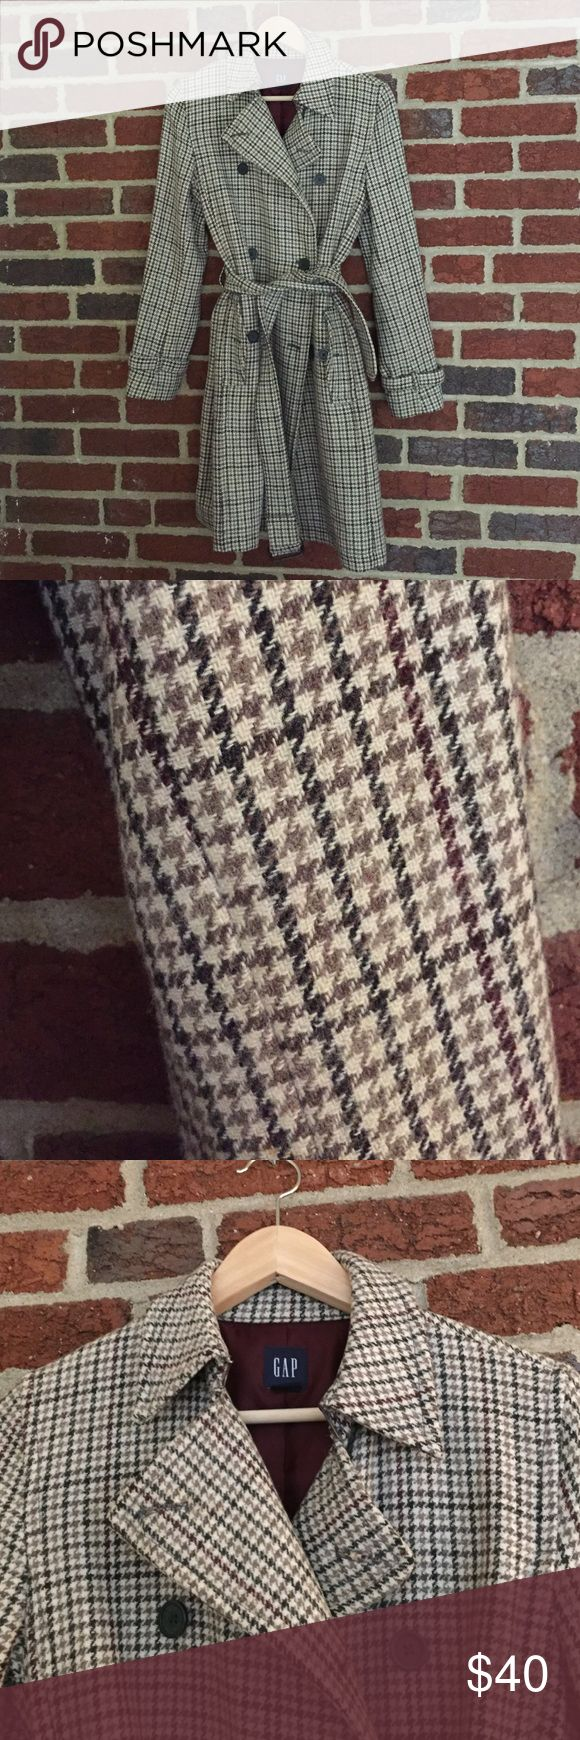 Classic Houndstooth Gap Coat Awesome houndstooth coat! In great condition! No pilling or stains. Looks brand new. Colors are cream, sage, olive green and brown. Buttons are grey. GAP Jackets & Coats